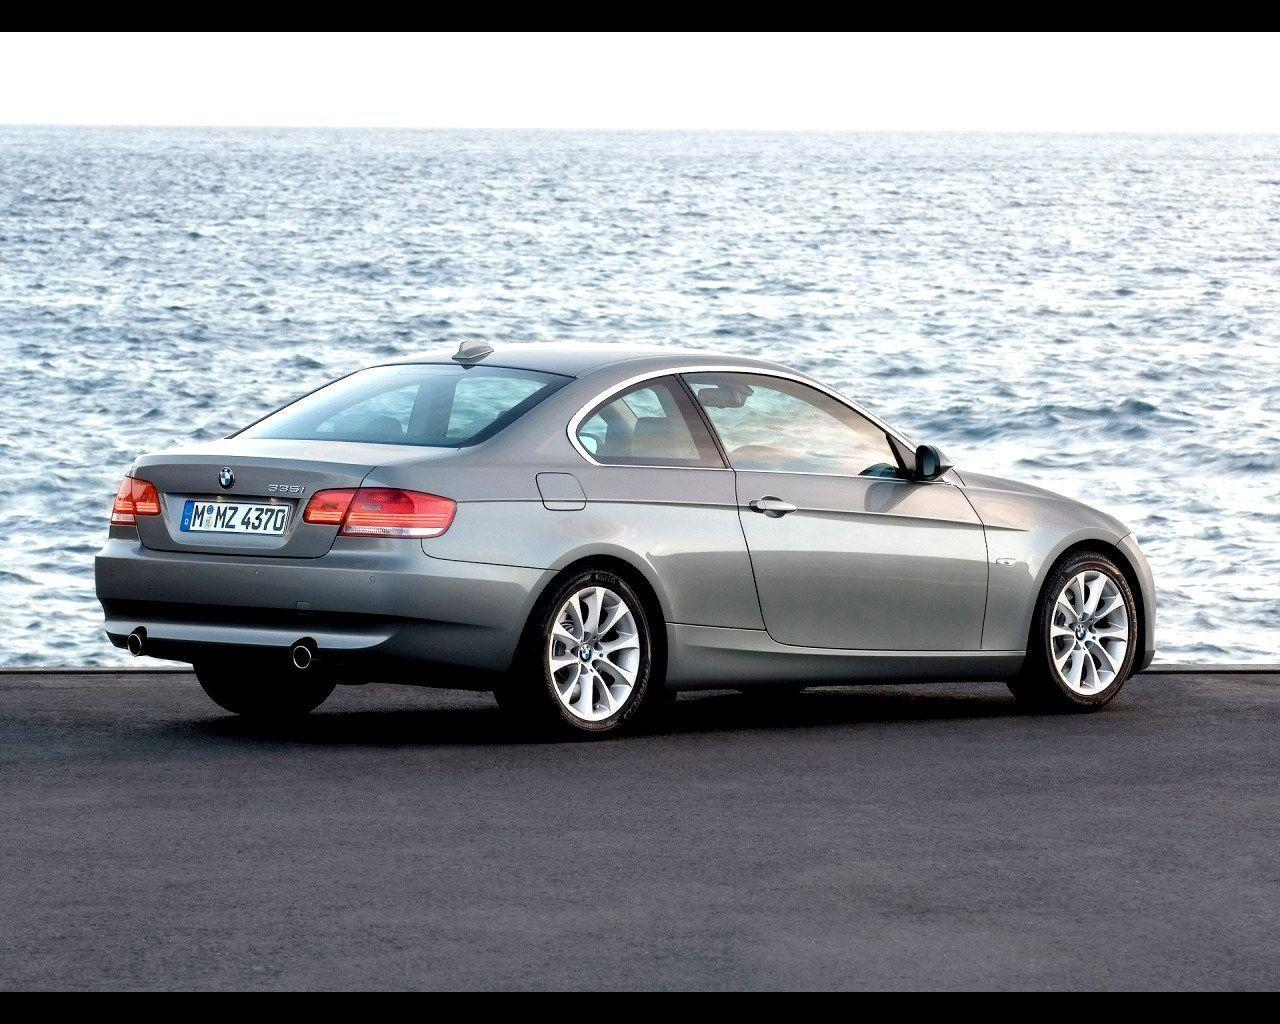 2007 BMW 335i Coupe Wallpaper 06 - 1280x1024